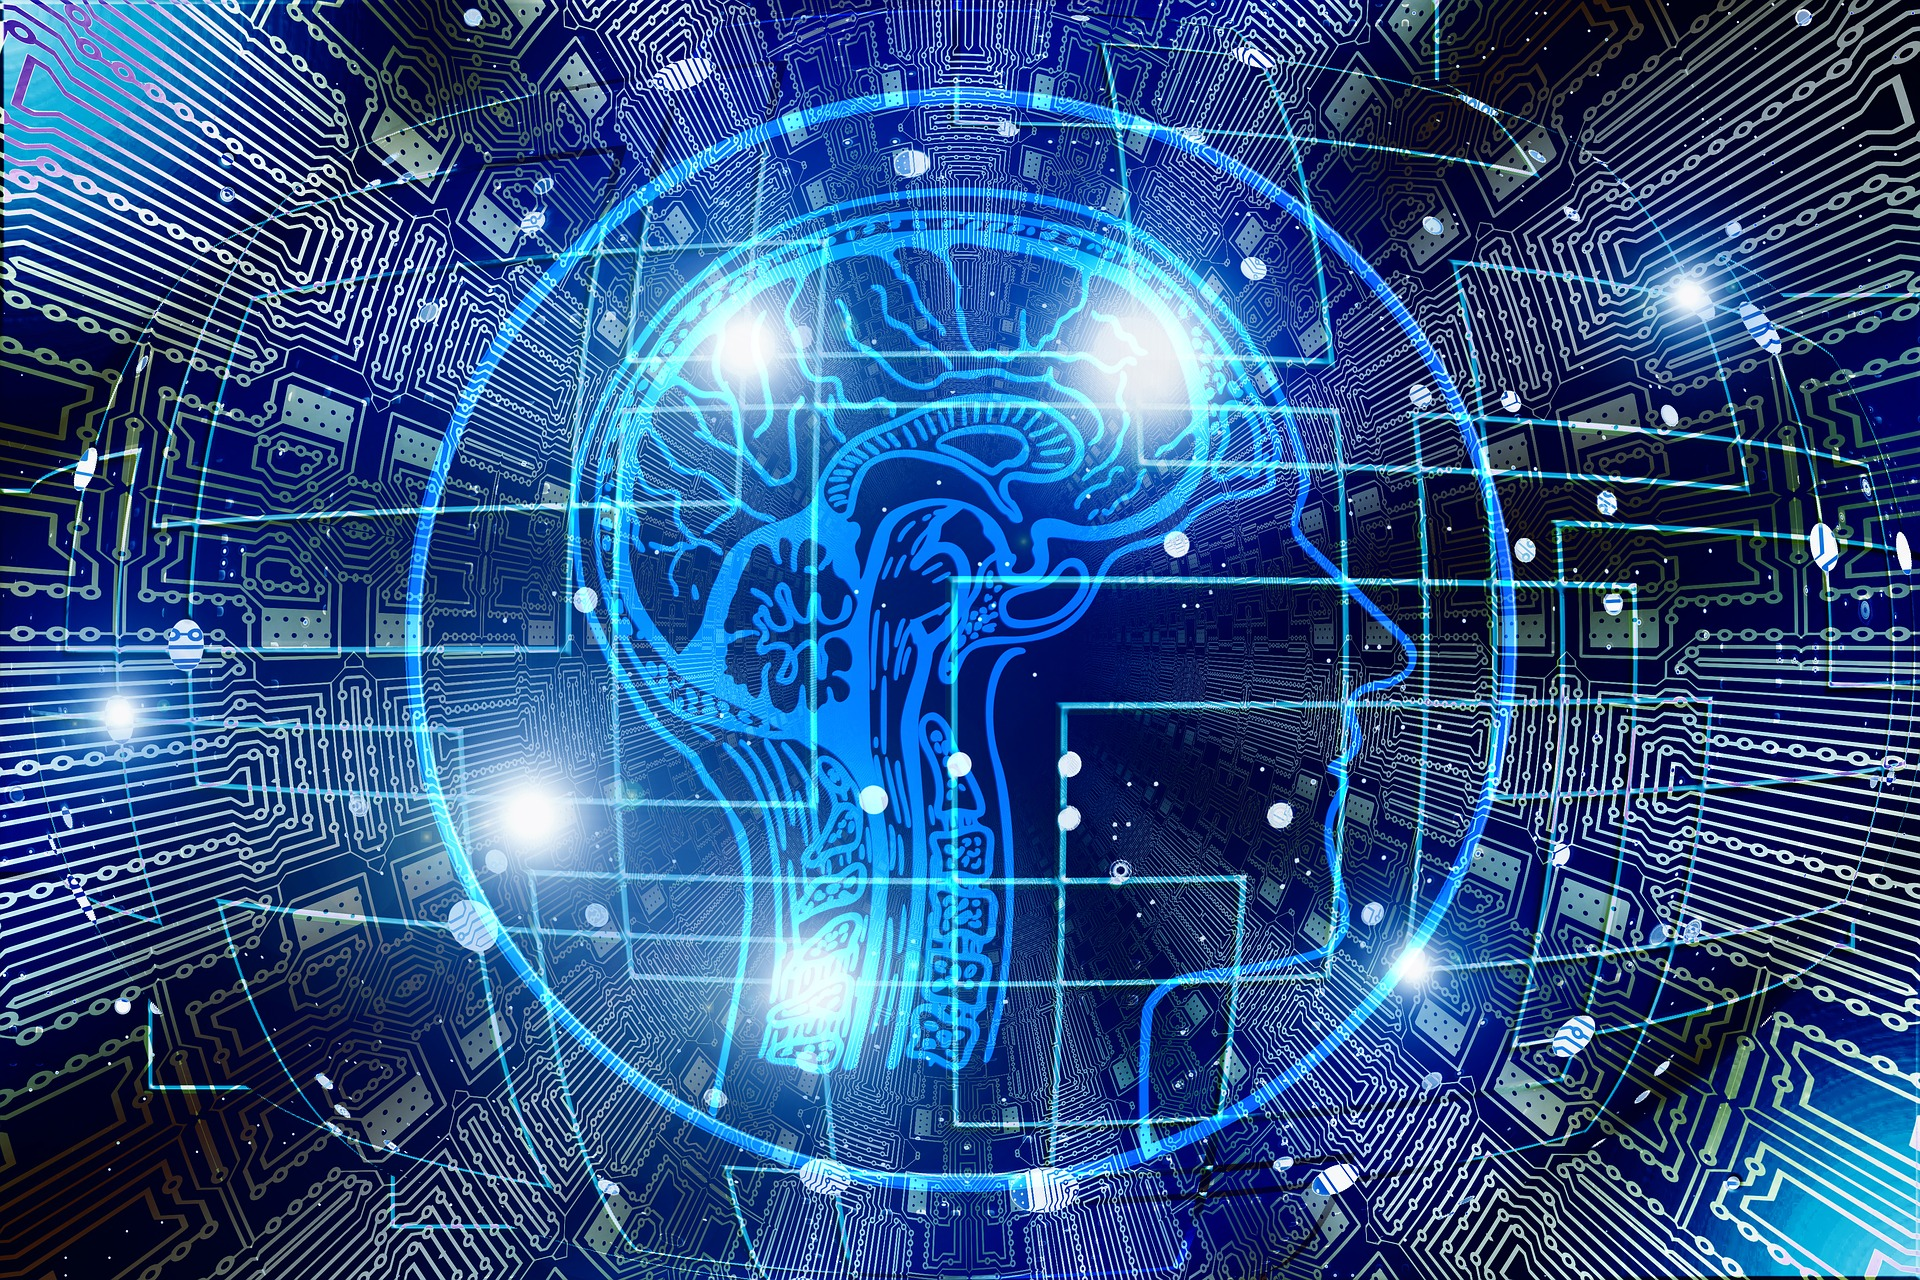 Risk Uk Use Of Artificial Intelligence For Fraud Detection Set To Triple By 2021 Asserts Sas